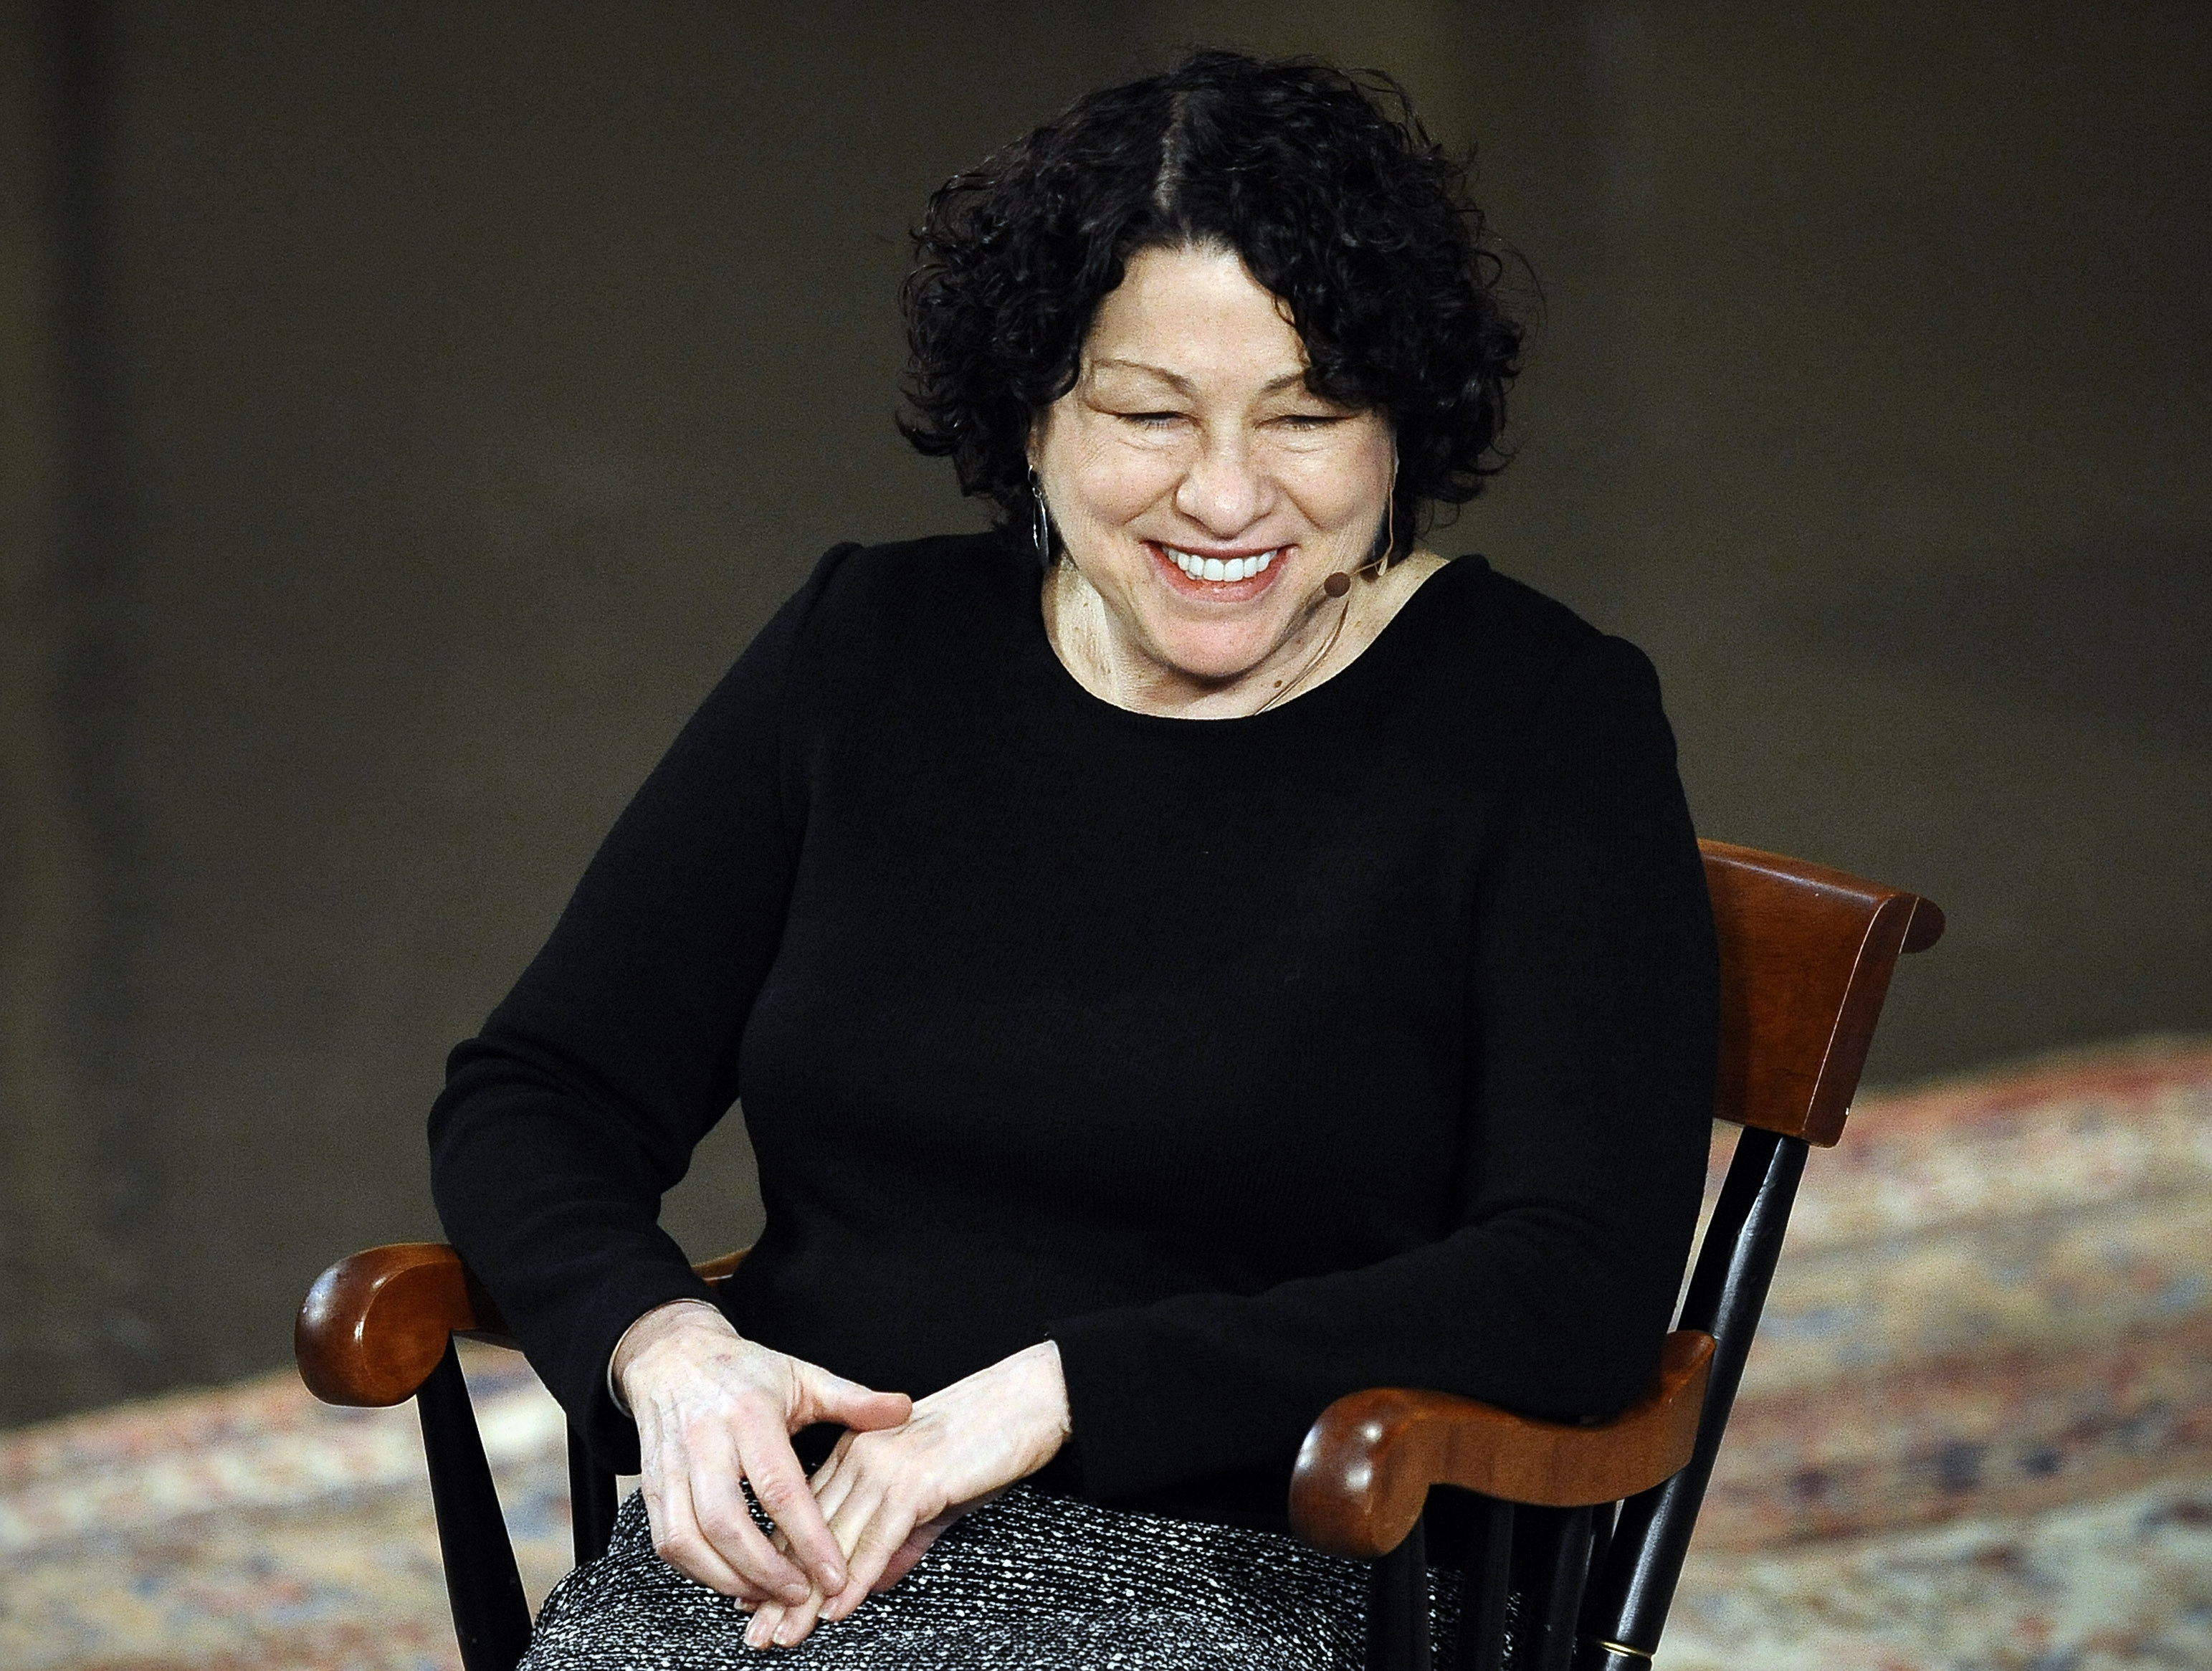 Supreme Court Justice Sonia Sotomayor was at Yale University, in New Haven, Conn., on Monday, talking to students about her life.